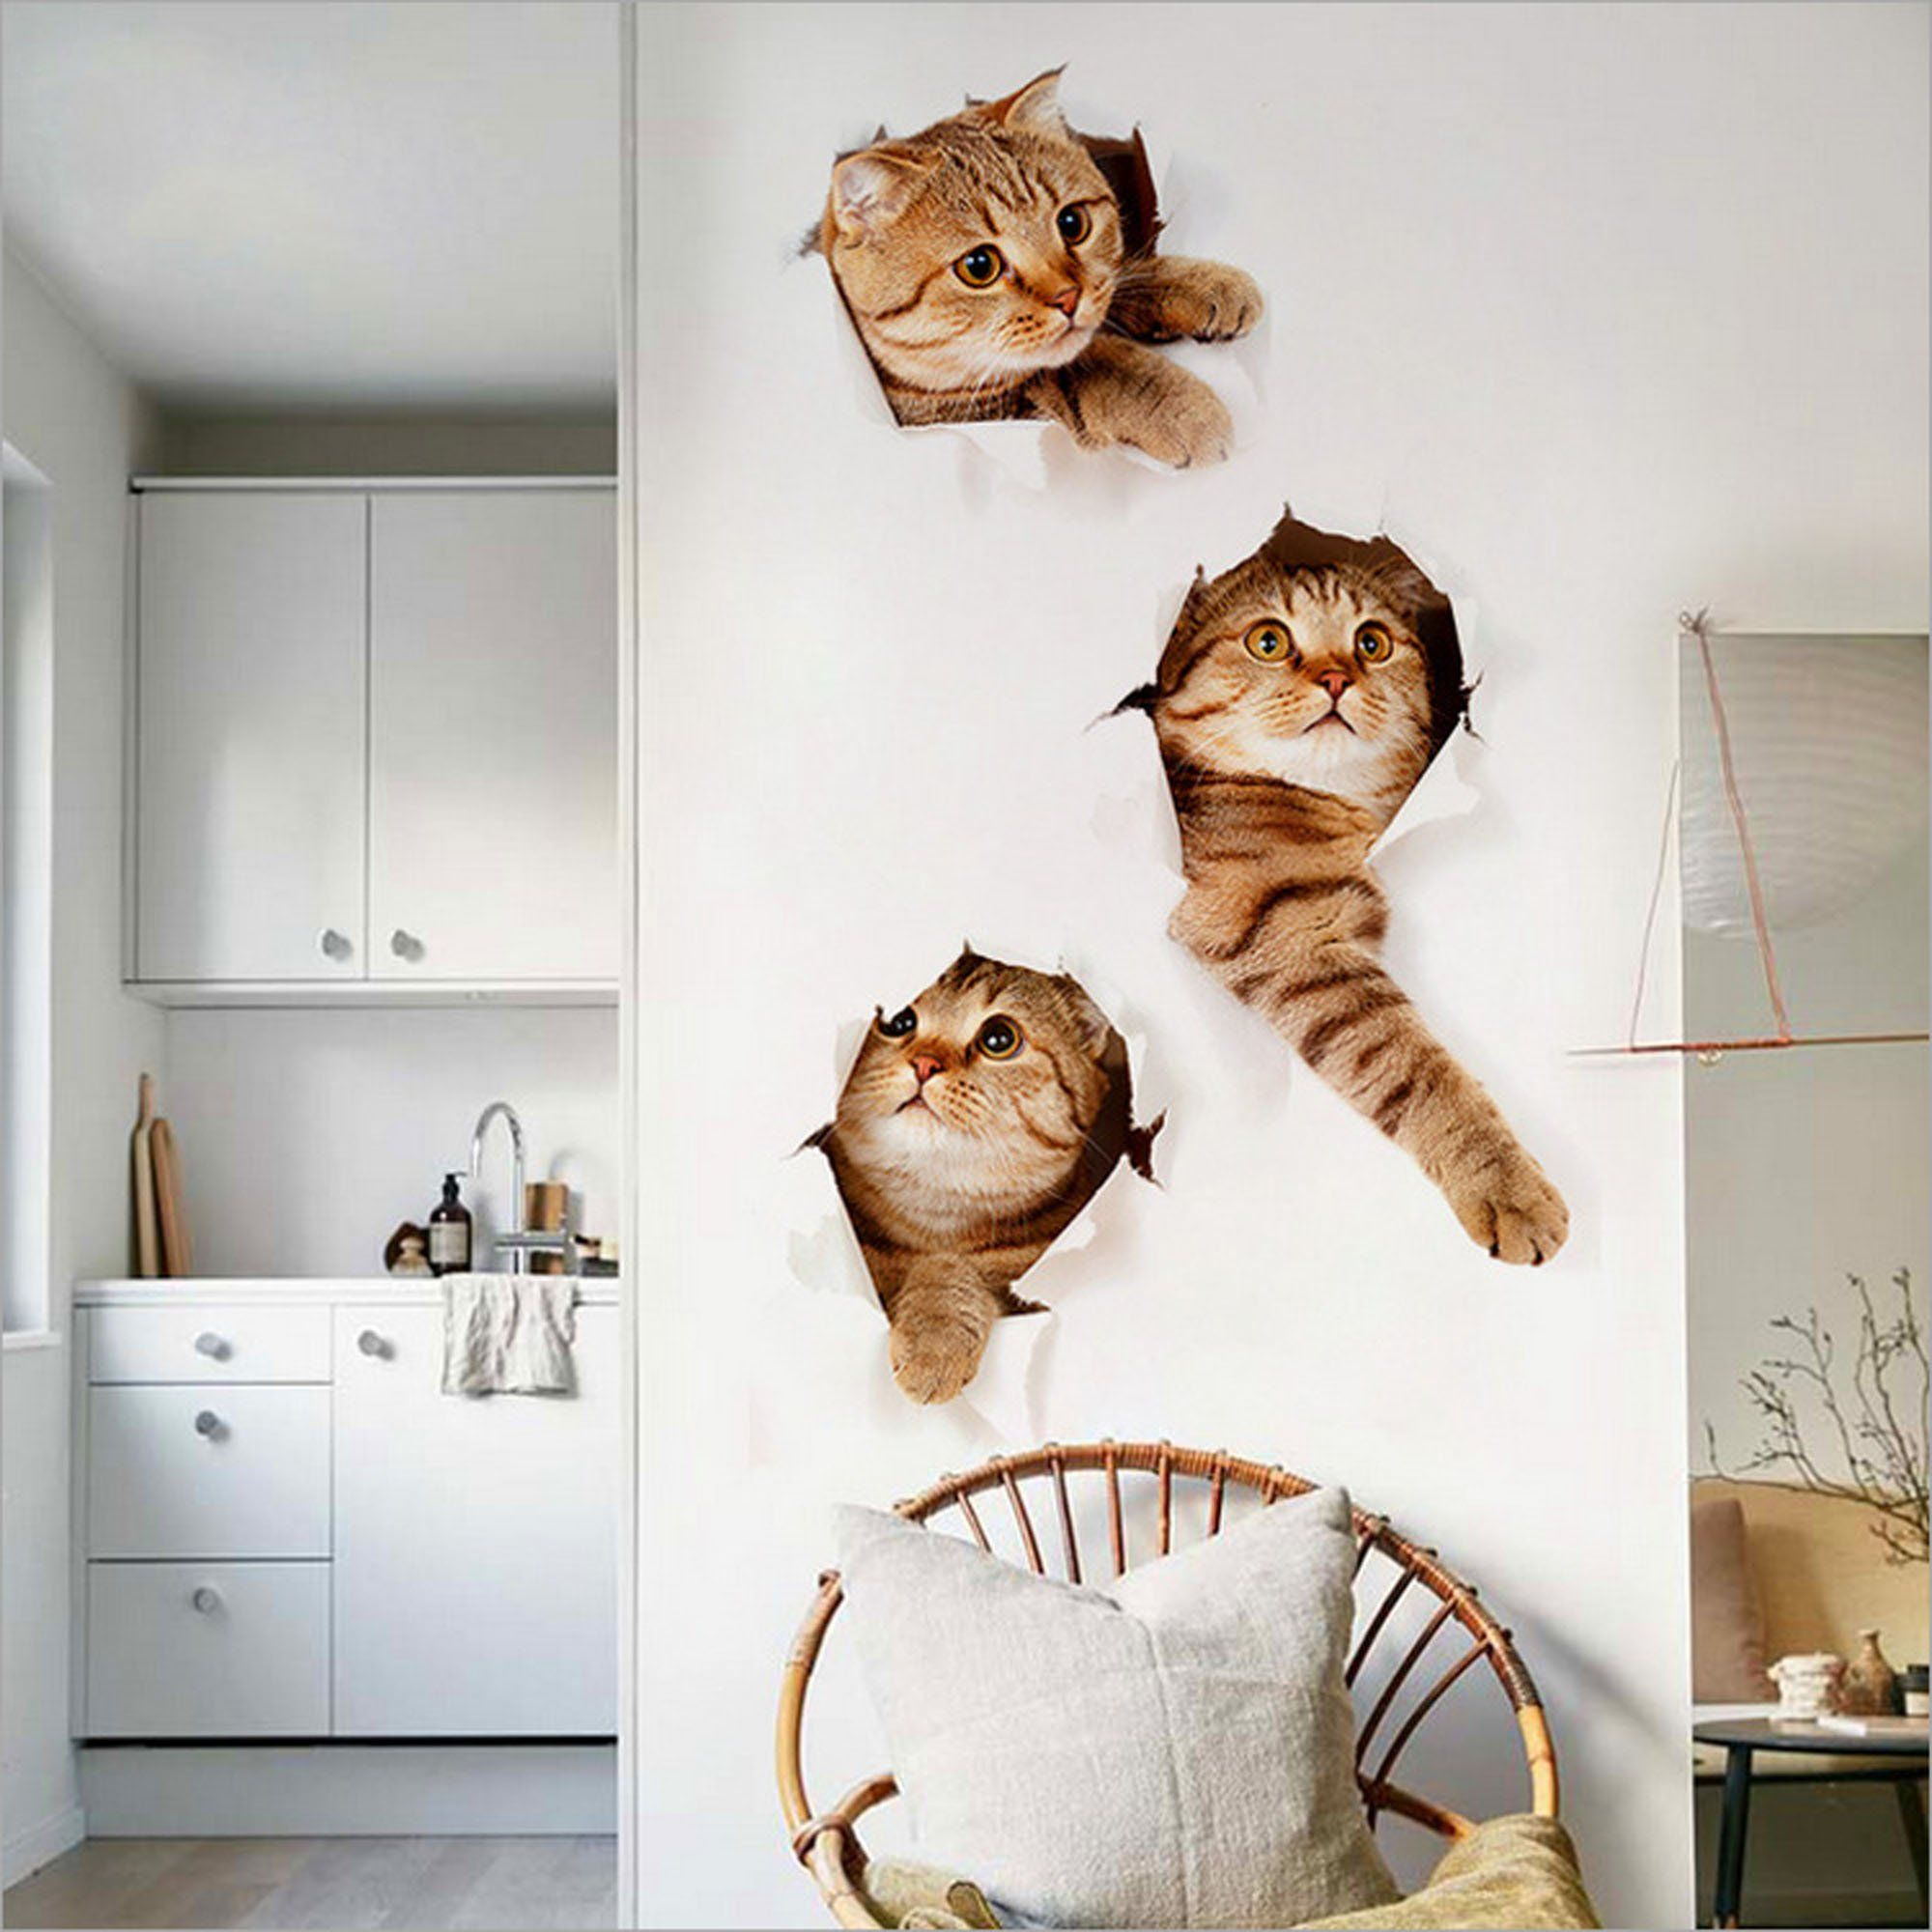 3d Wall Decals Stickers Vivid Decors Murals Cat Easy To Peel Easy